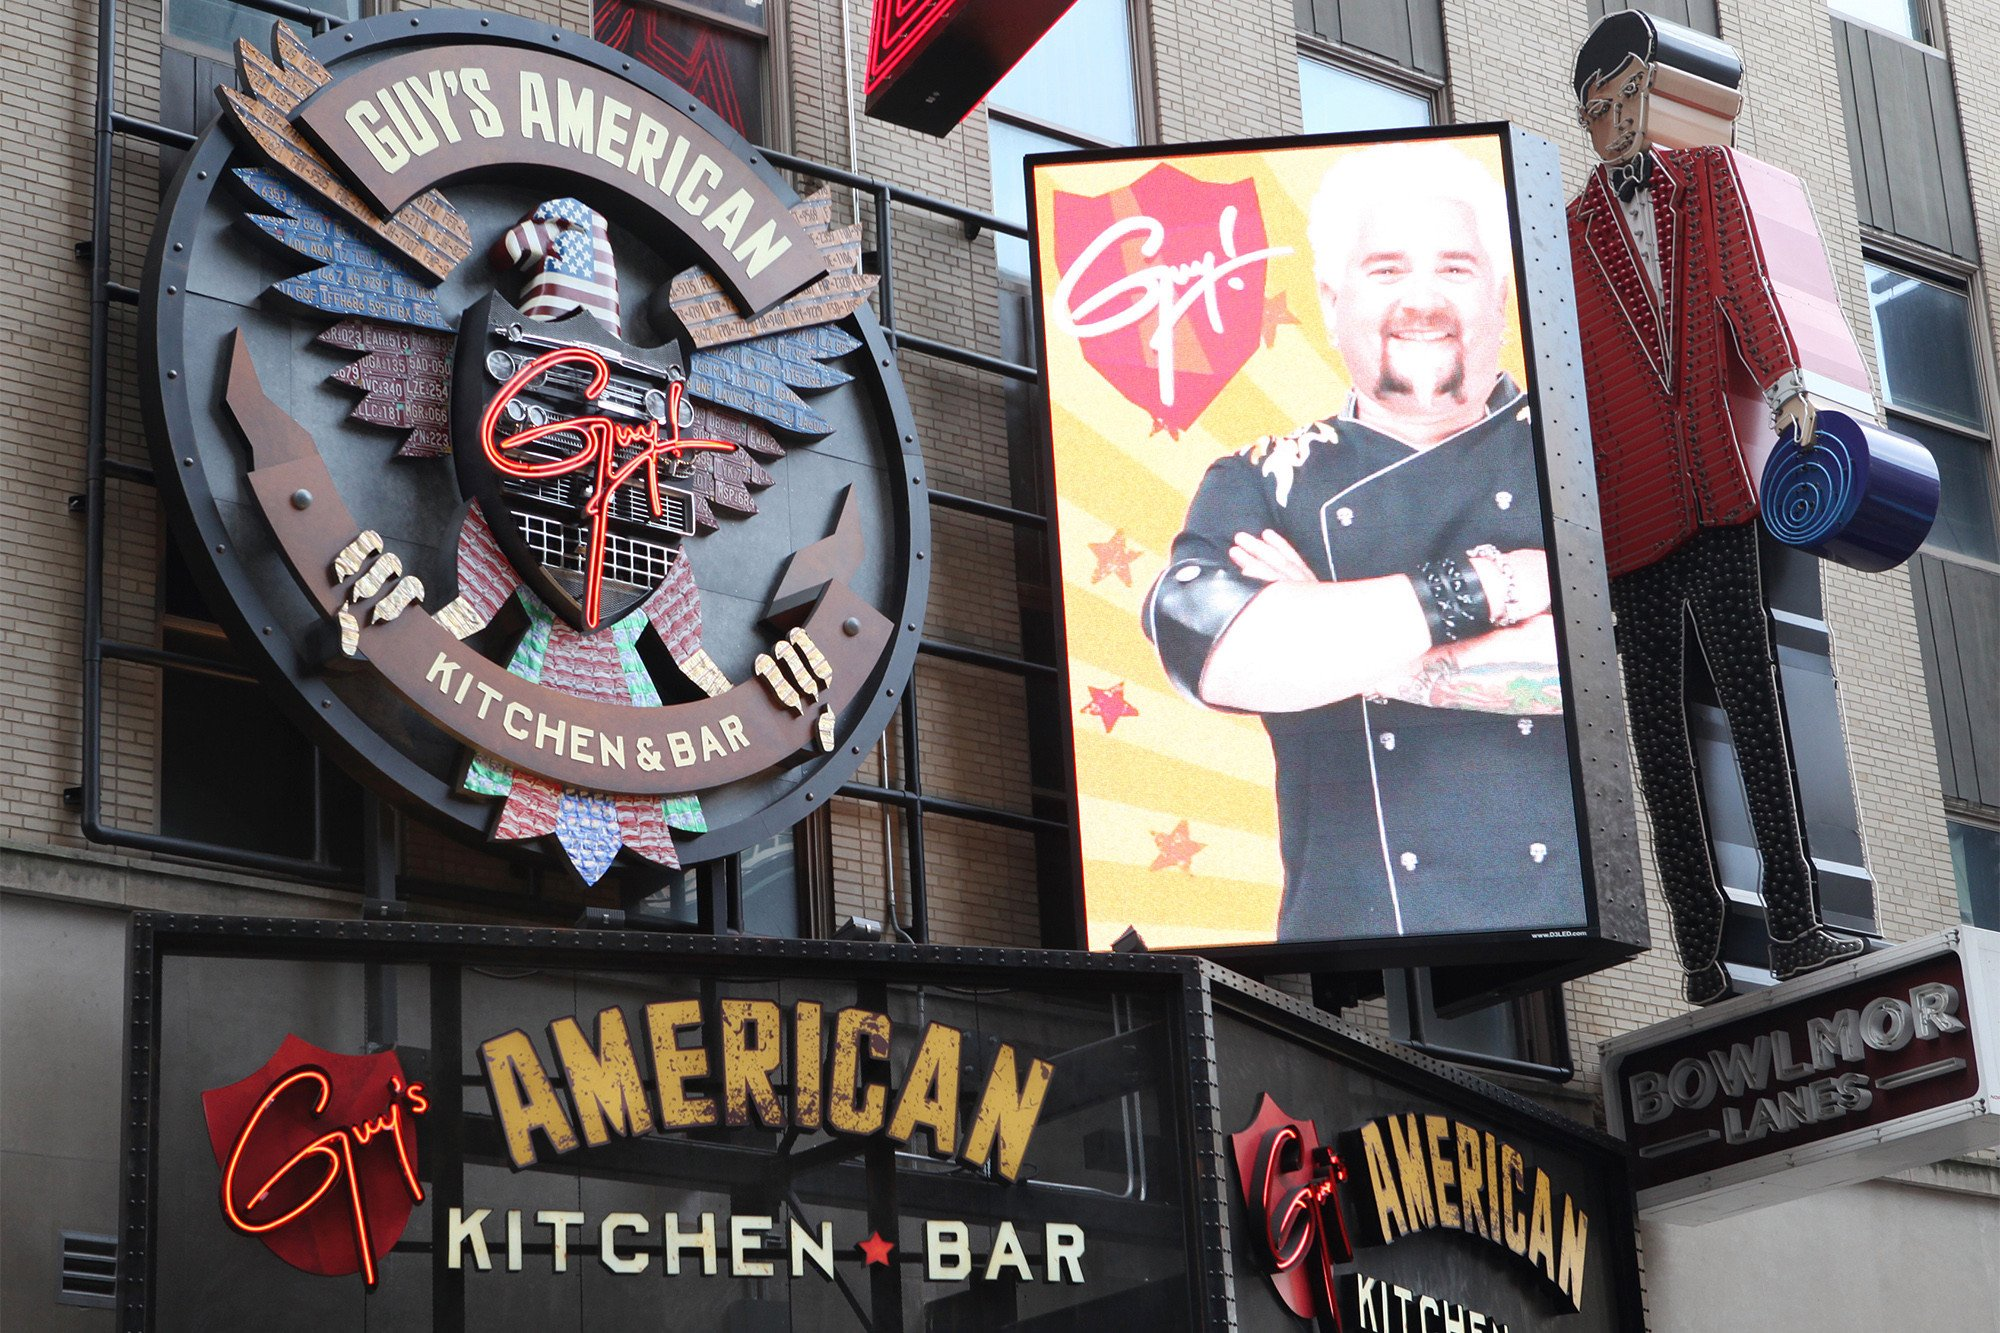 Good riddance to Guy Fieri's Times Square tourist trap